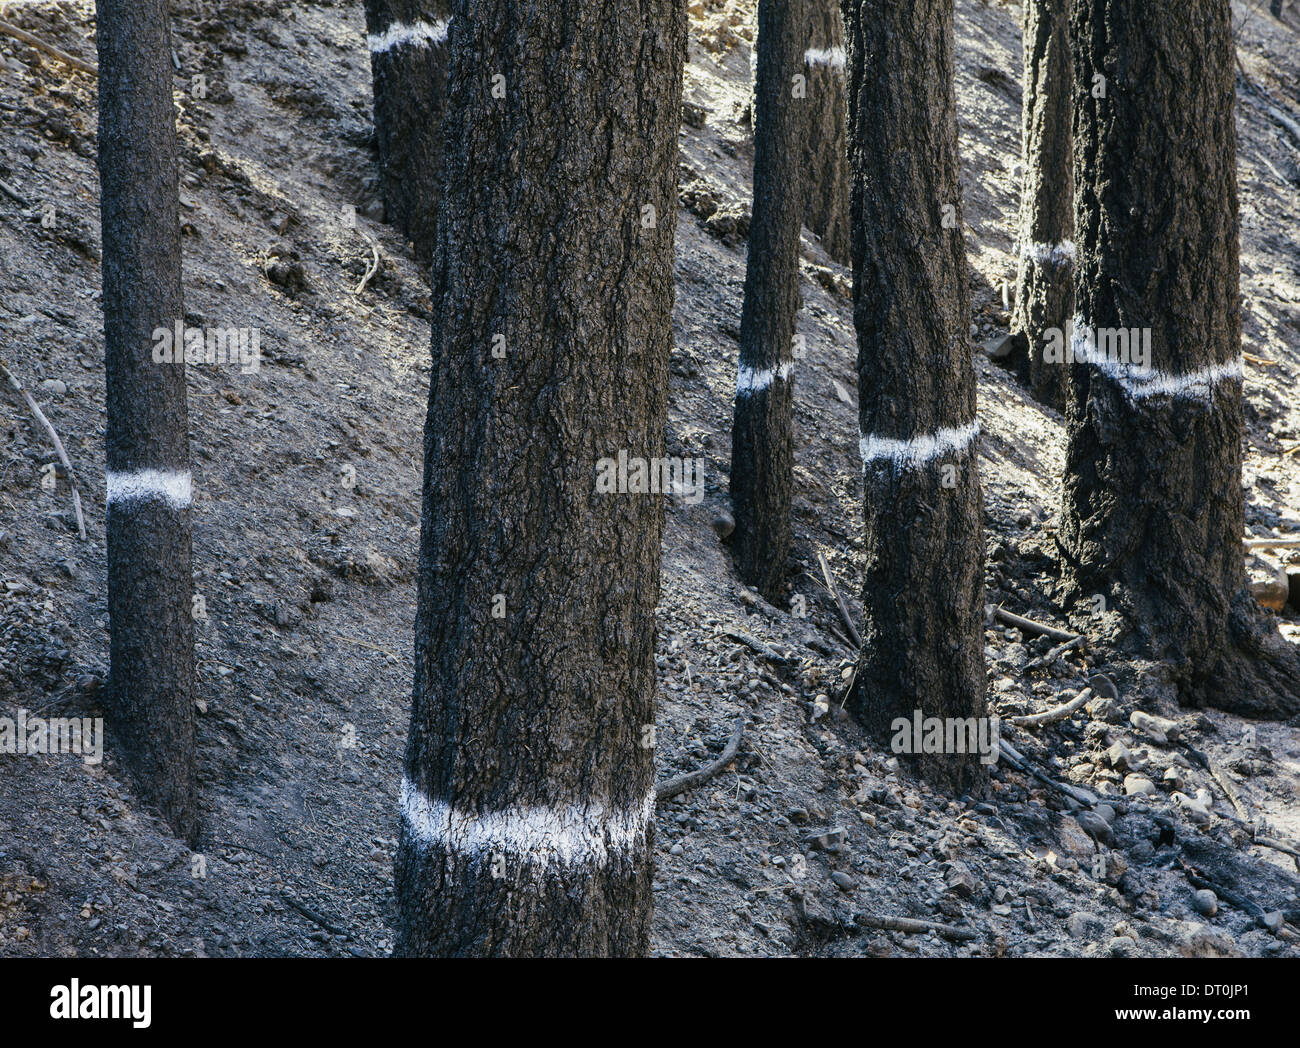 Washington state USA Trees burned by forest fire Taylor Bridge fire - Stock Image